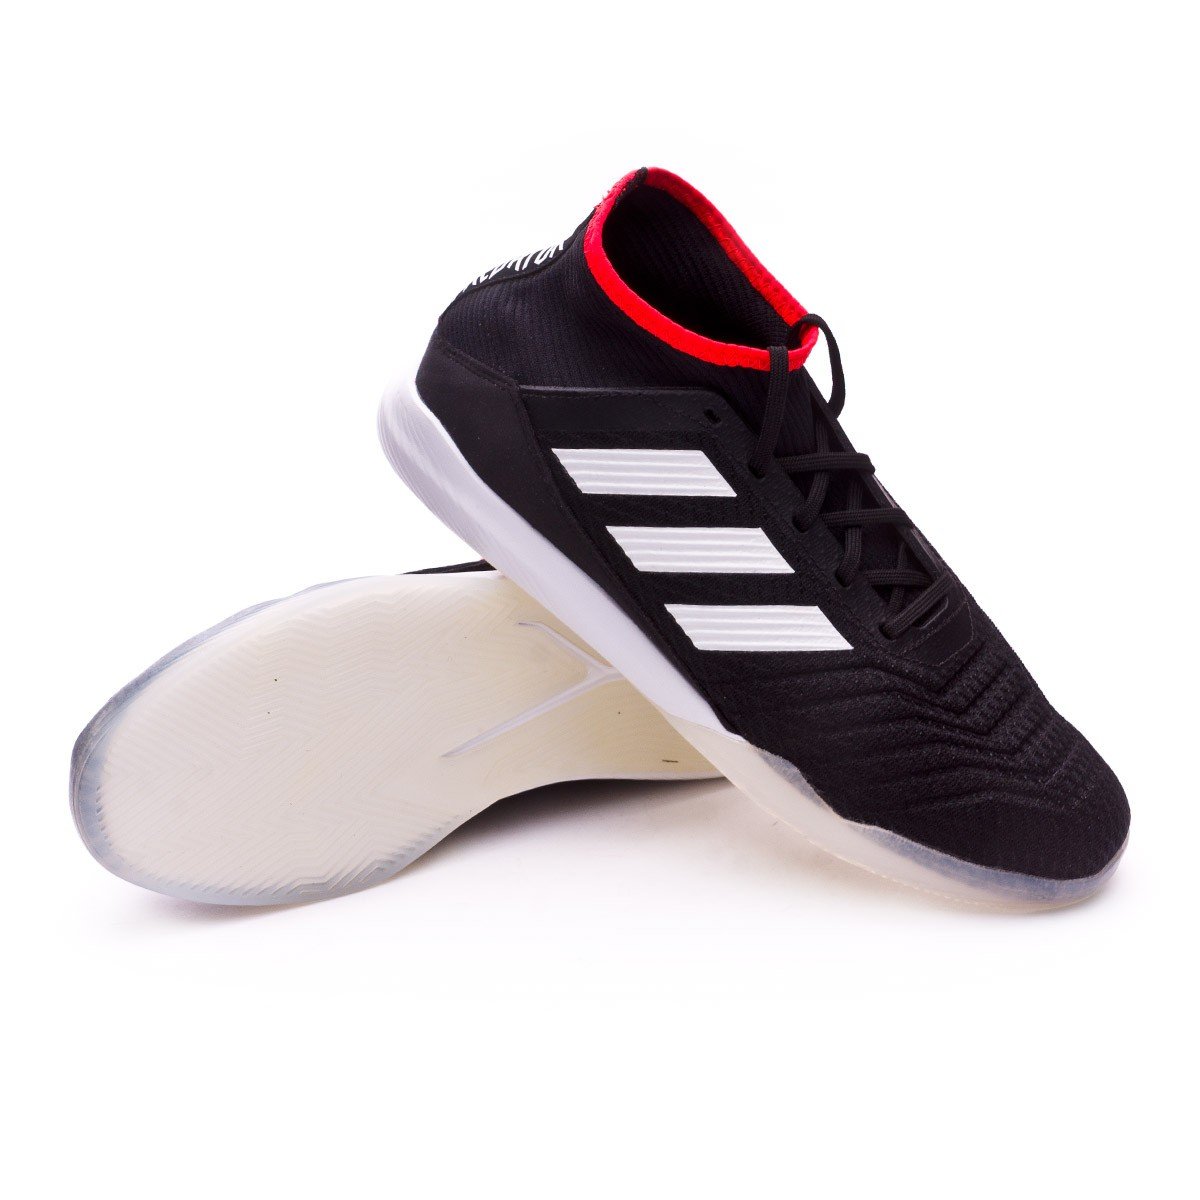 low cost 29c6a c37df Zapatilla adidas Predator Tango 18.3 TR Core black-White-Solar red - Tienda  de fútbol Fútbol Emotion